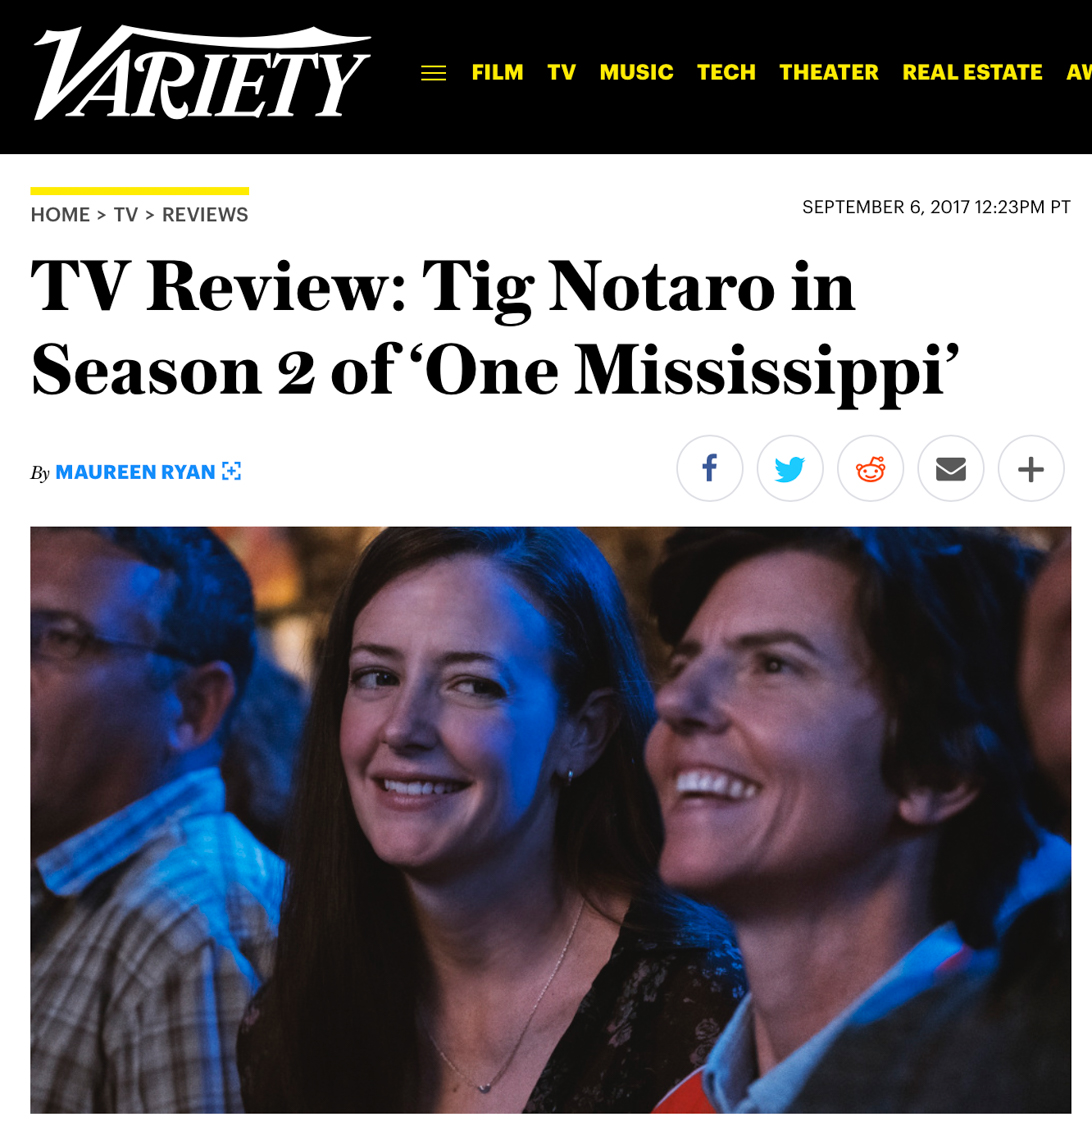 Variety: One Mississippi